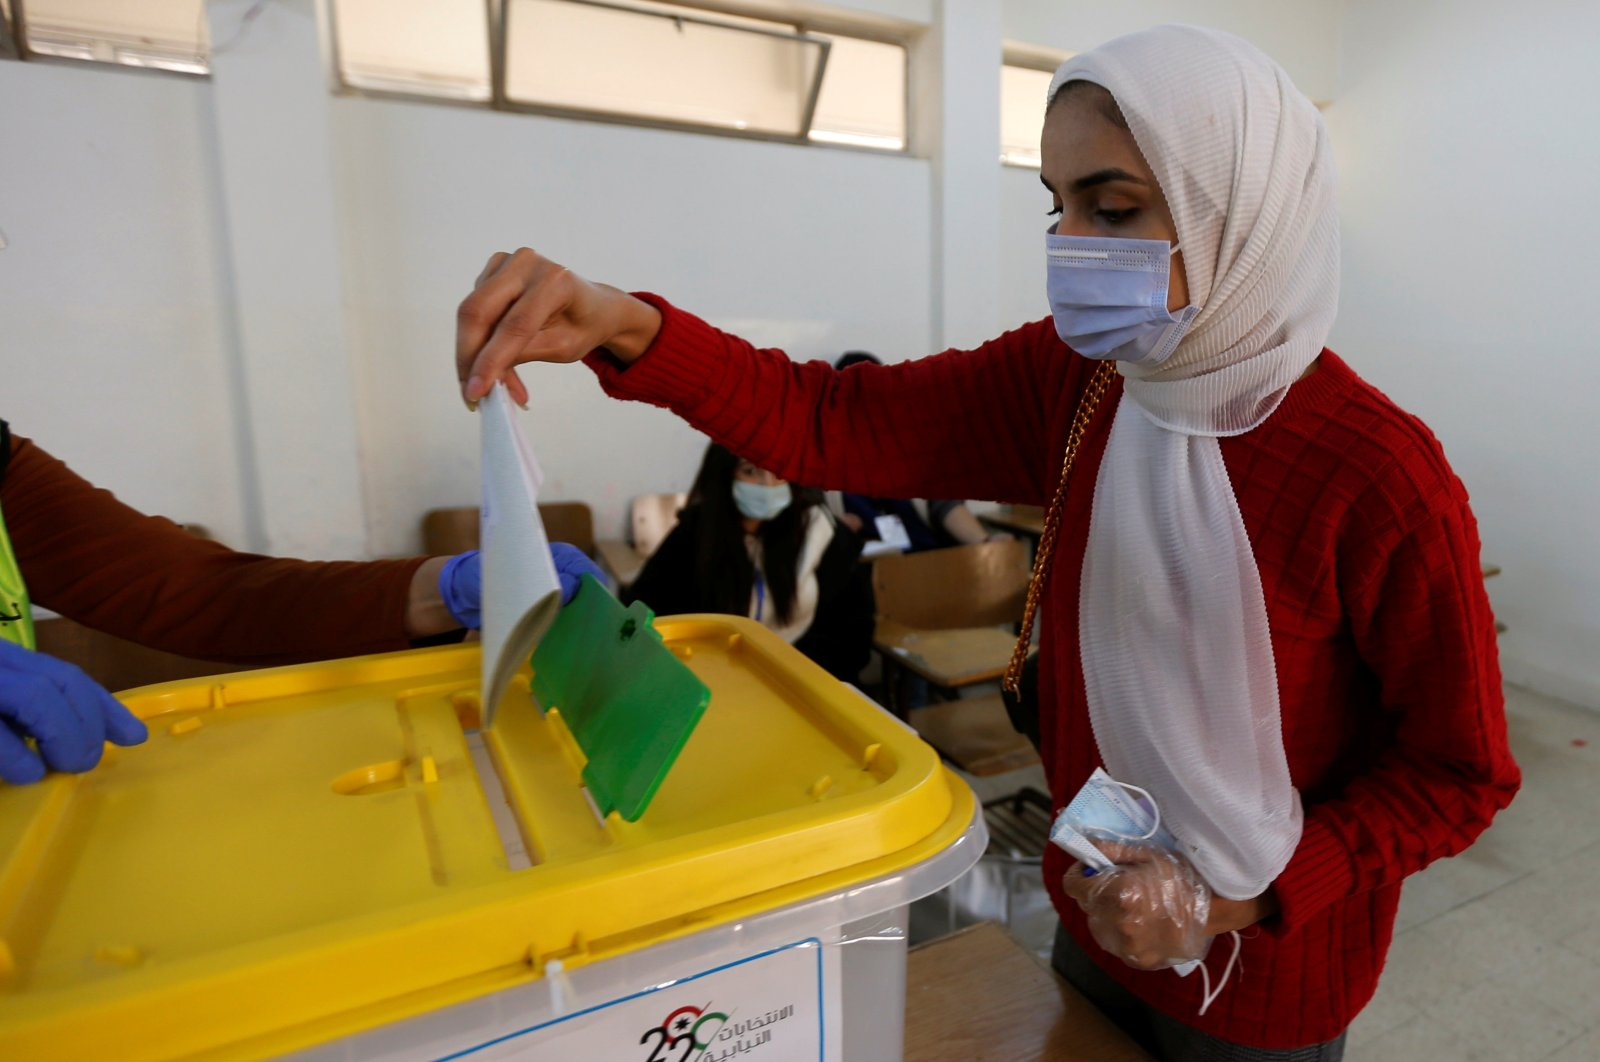 A woman casts her vote during parliamentary elections amid fears over the rising number of coronavirus cases, in Amman, Jordan, Nov. 10, 2020. (Reuters Photo)